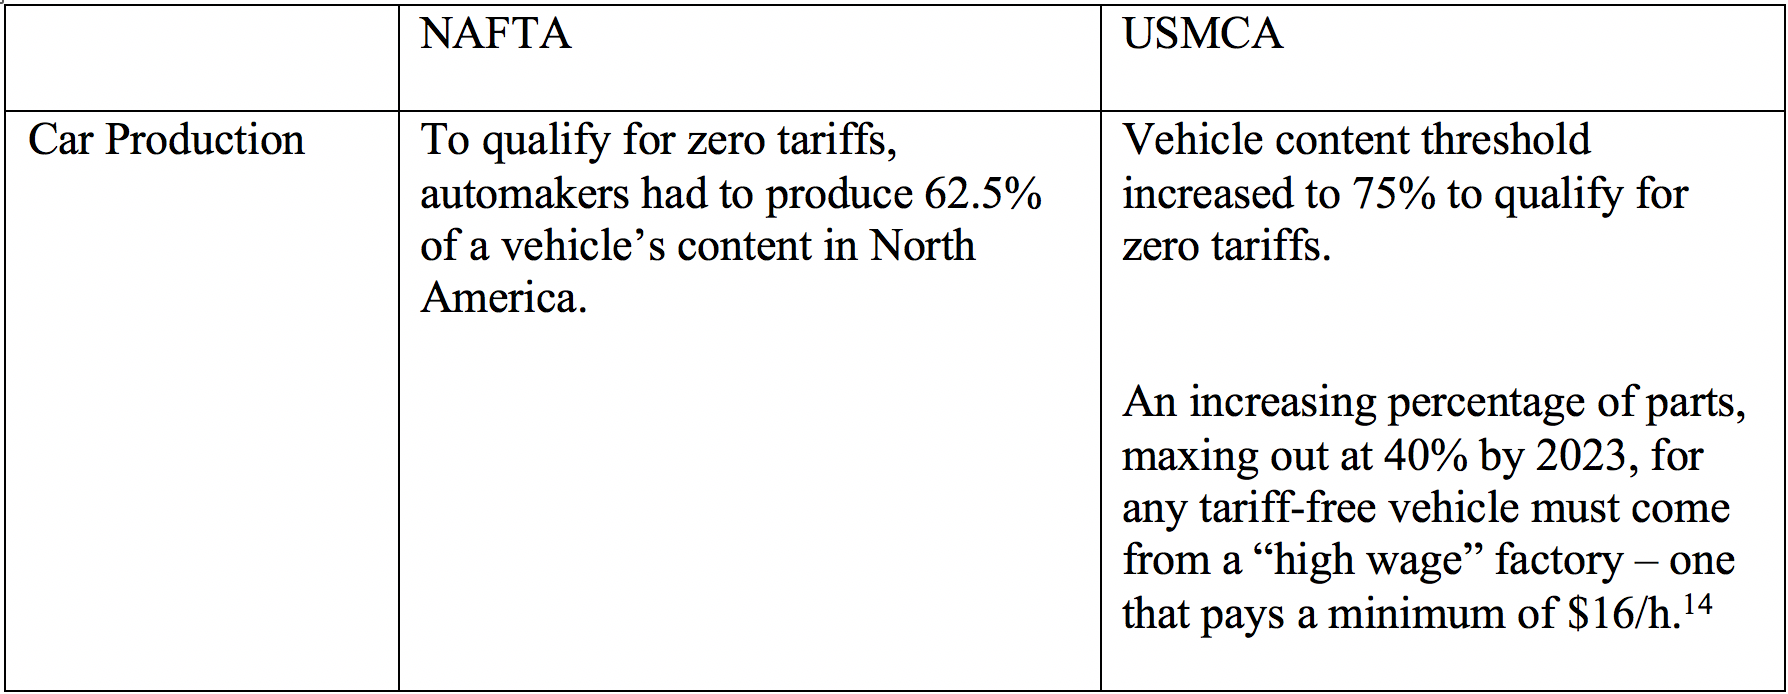 Table 1: Comparison of NAFTA and USMCA in Car Production